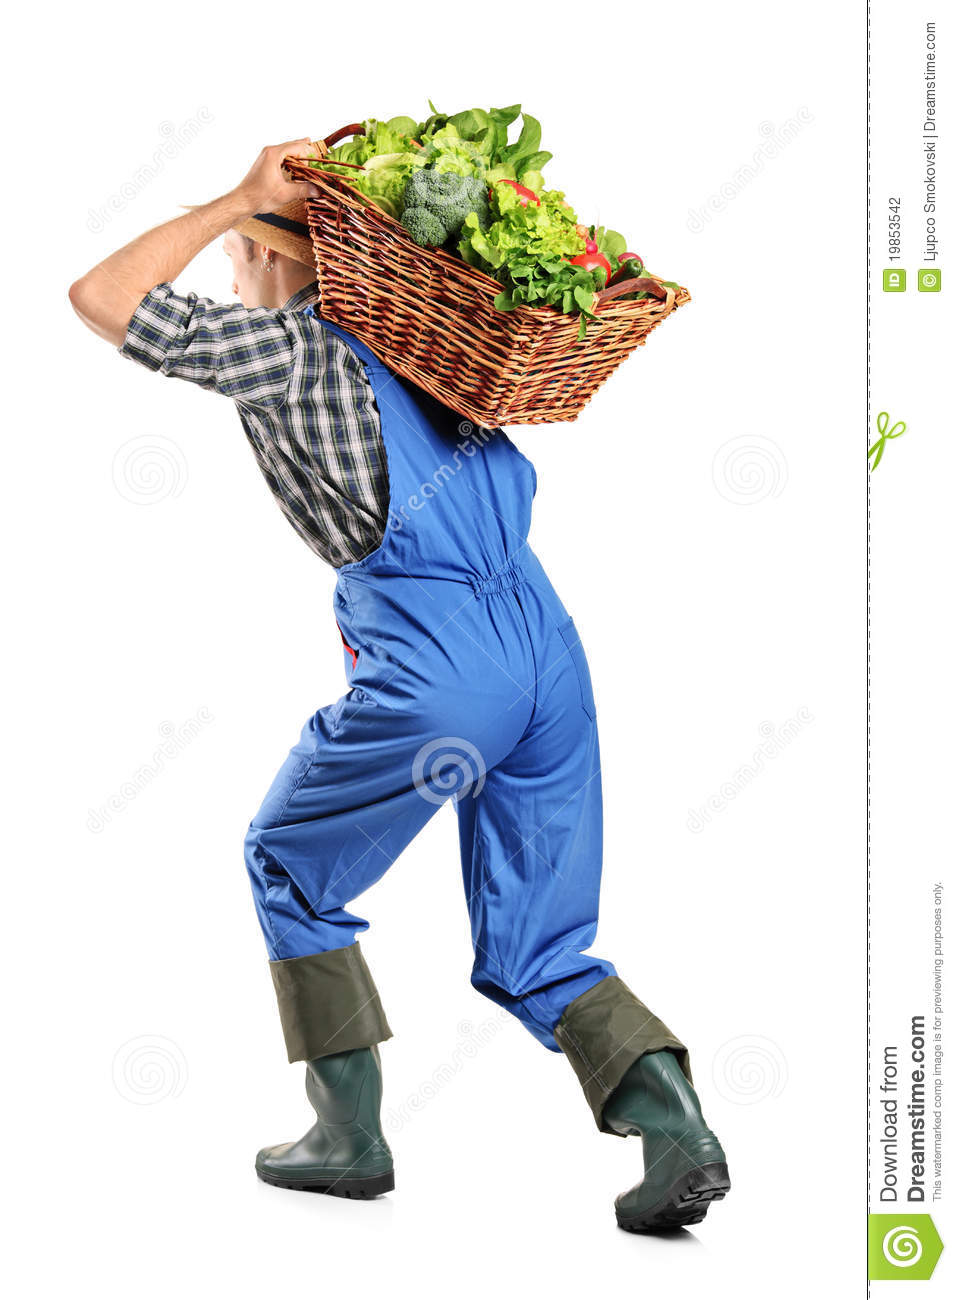 Farmer Carrying A Basket Of Vegetables On His Back Stock